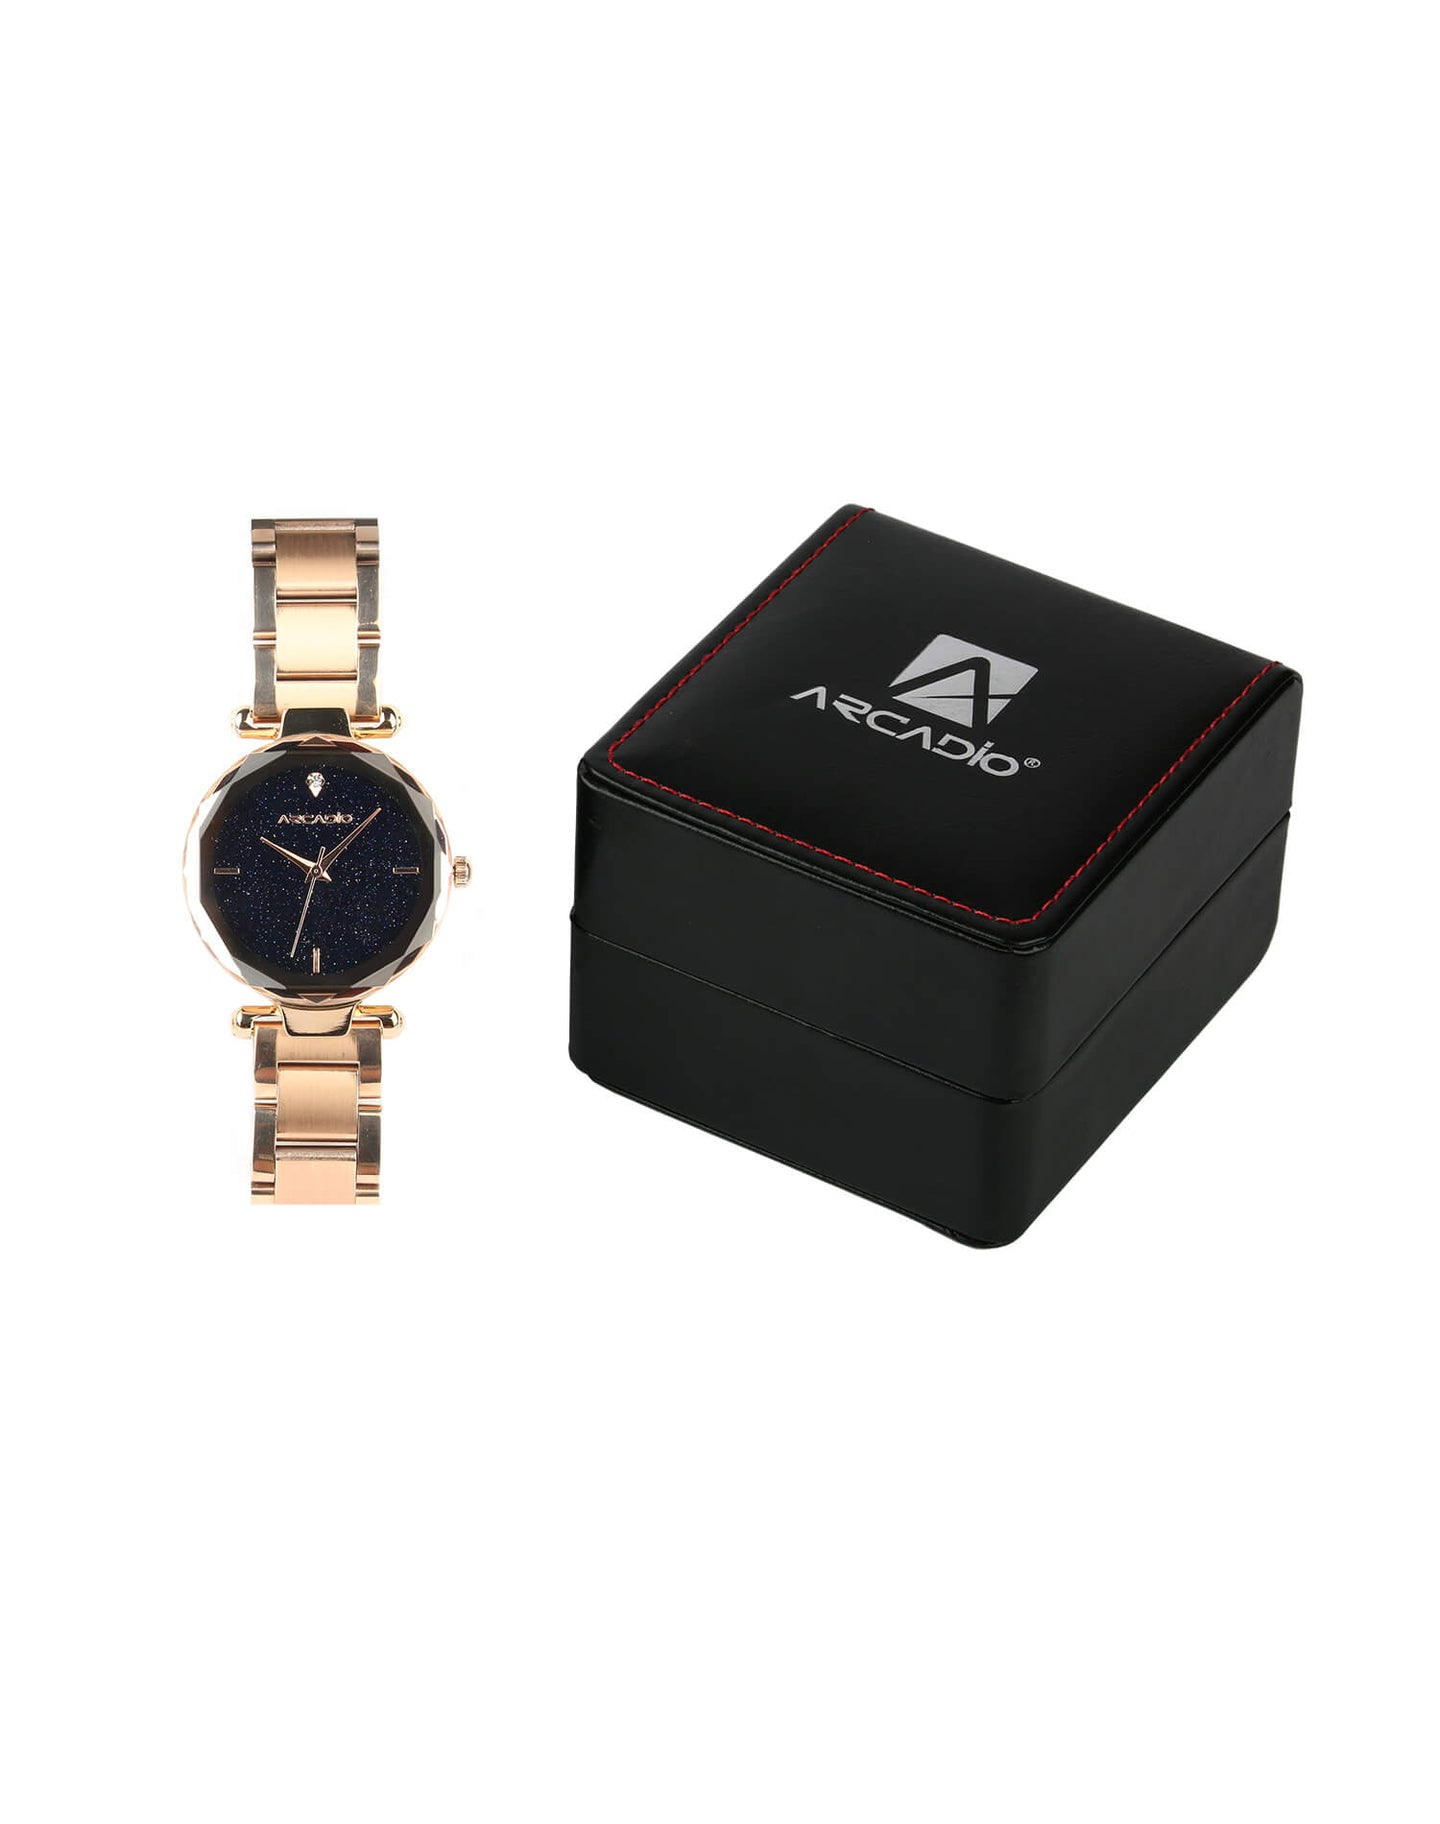 ARCADIO StarGaze Bracelet Watch - Ravishing Rose Gold - ARSG1001RG